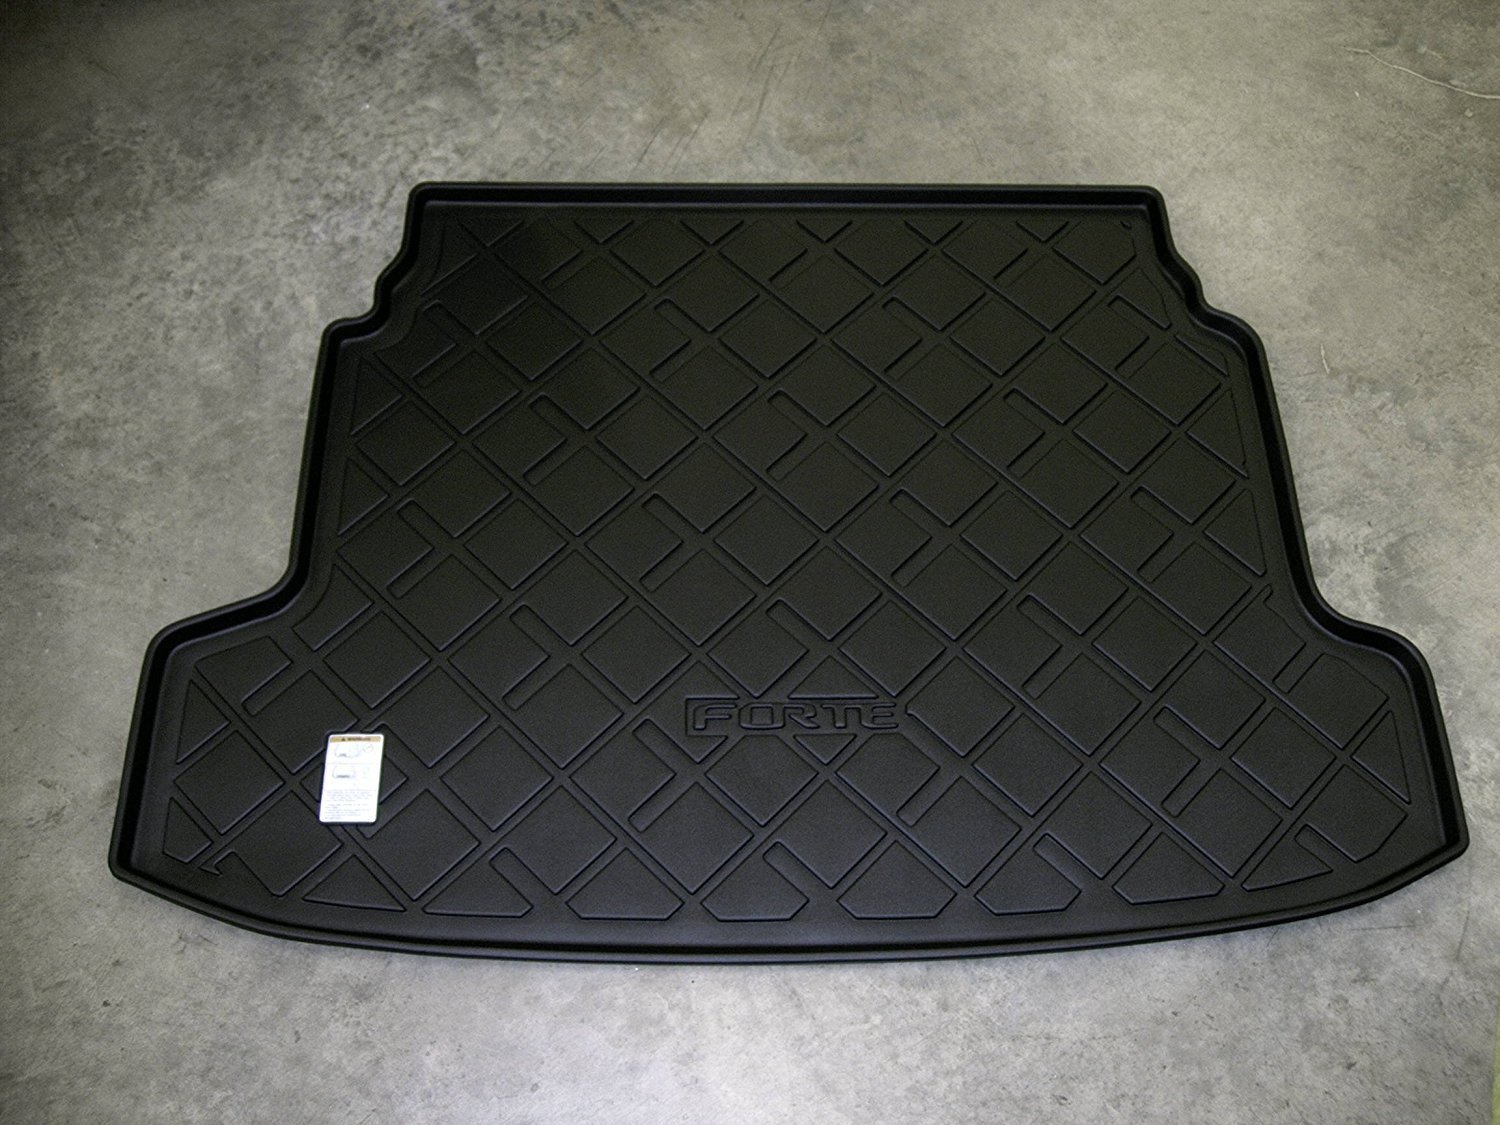 Genuine Kia Accessories U8120-1M000 Cargo Tray for Kia Forte Sedan